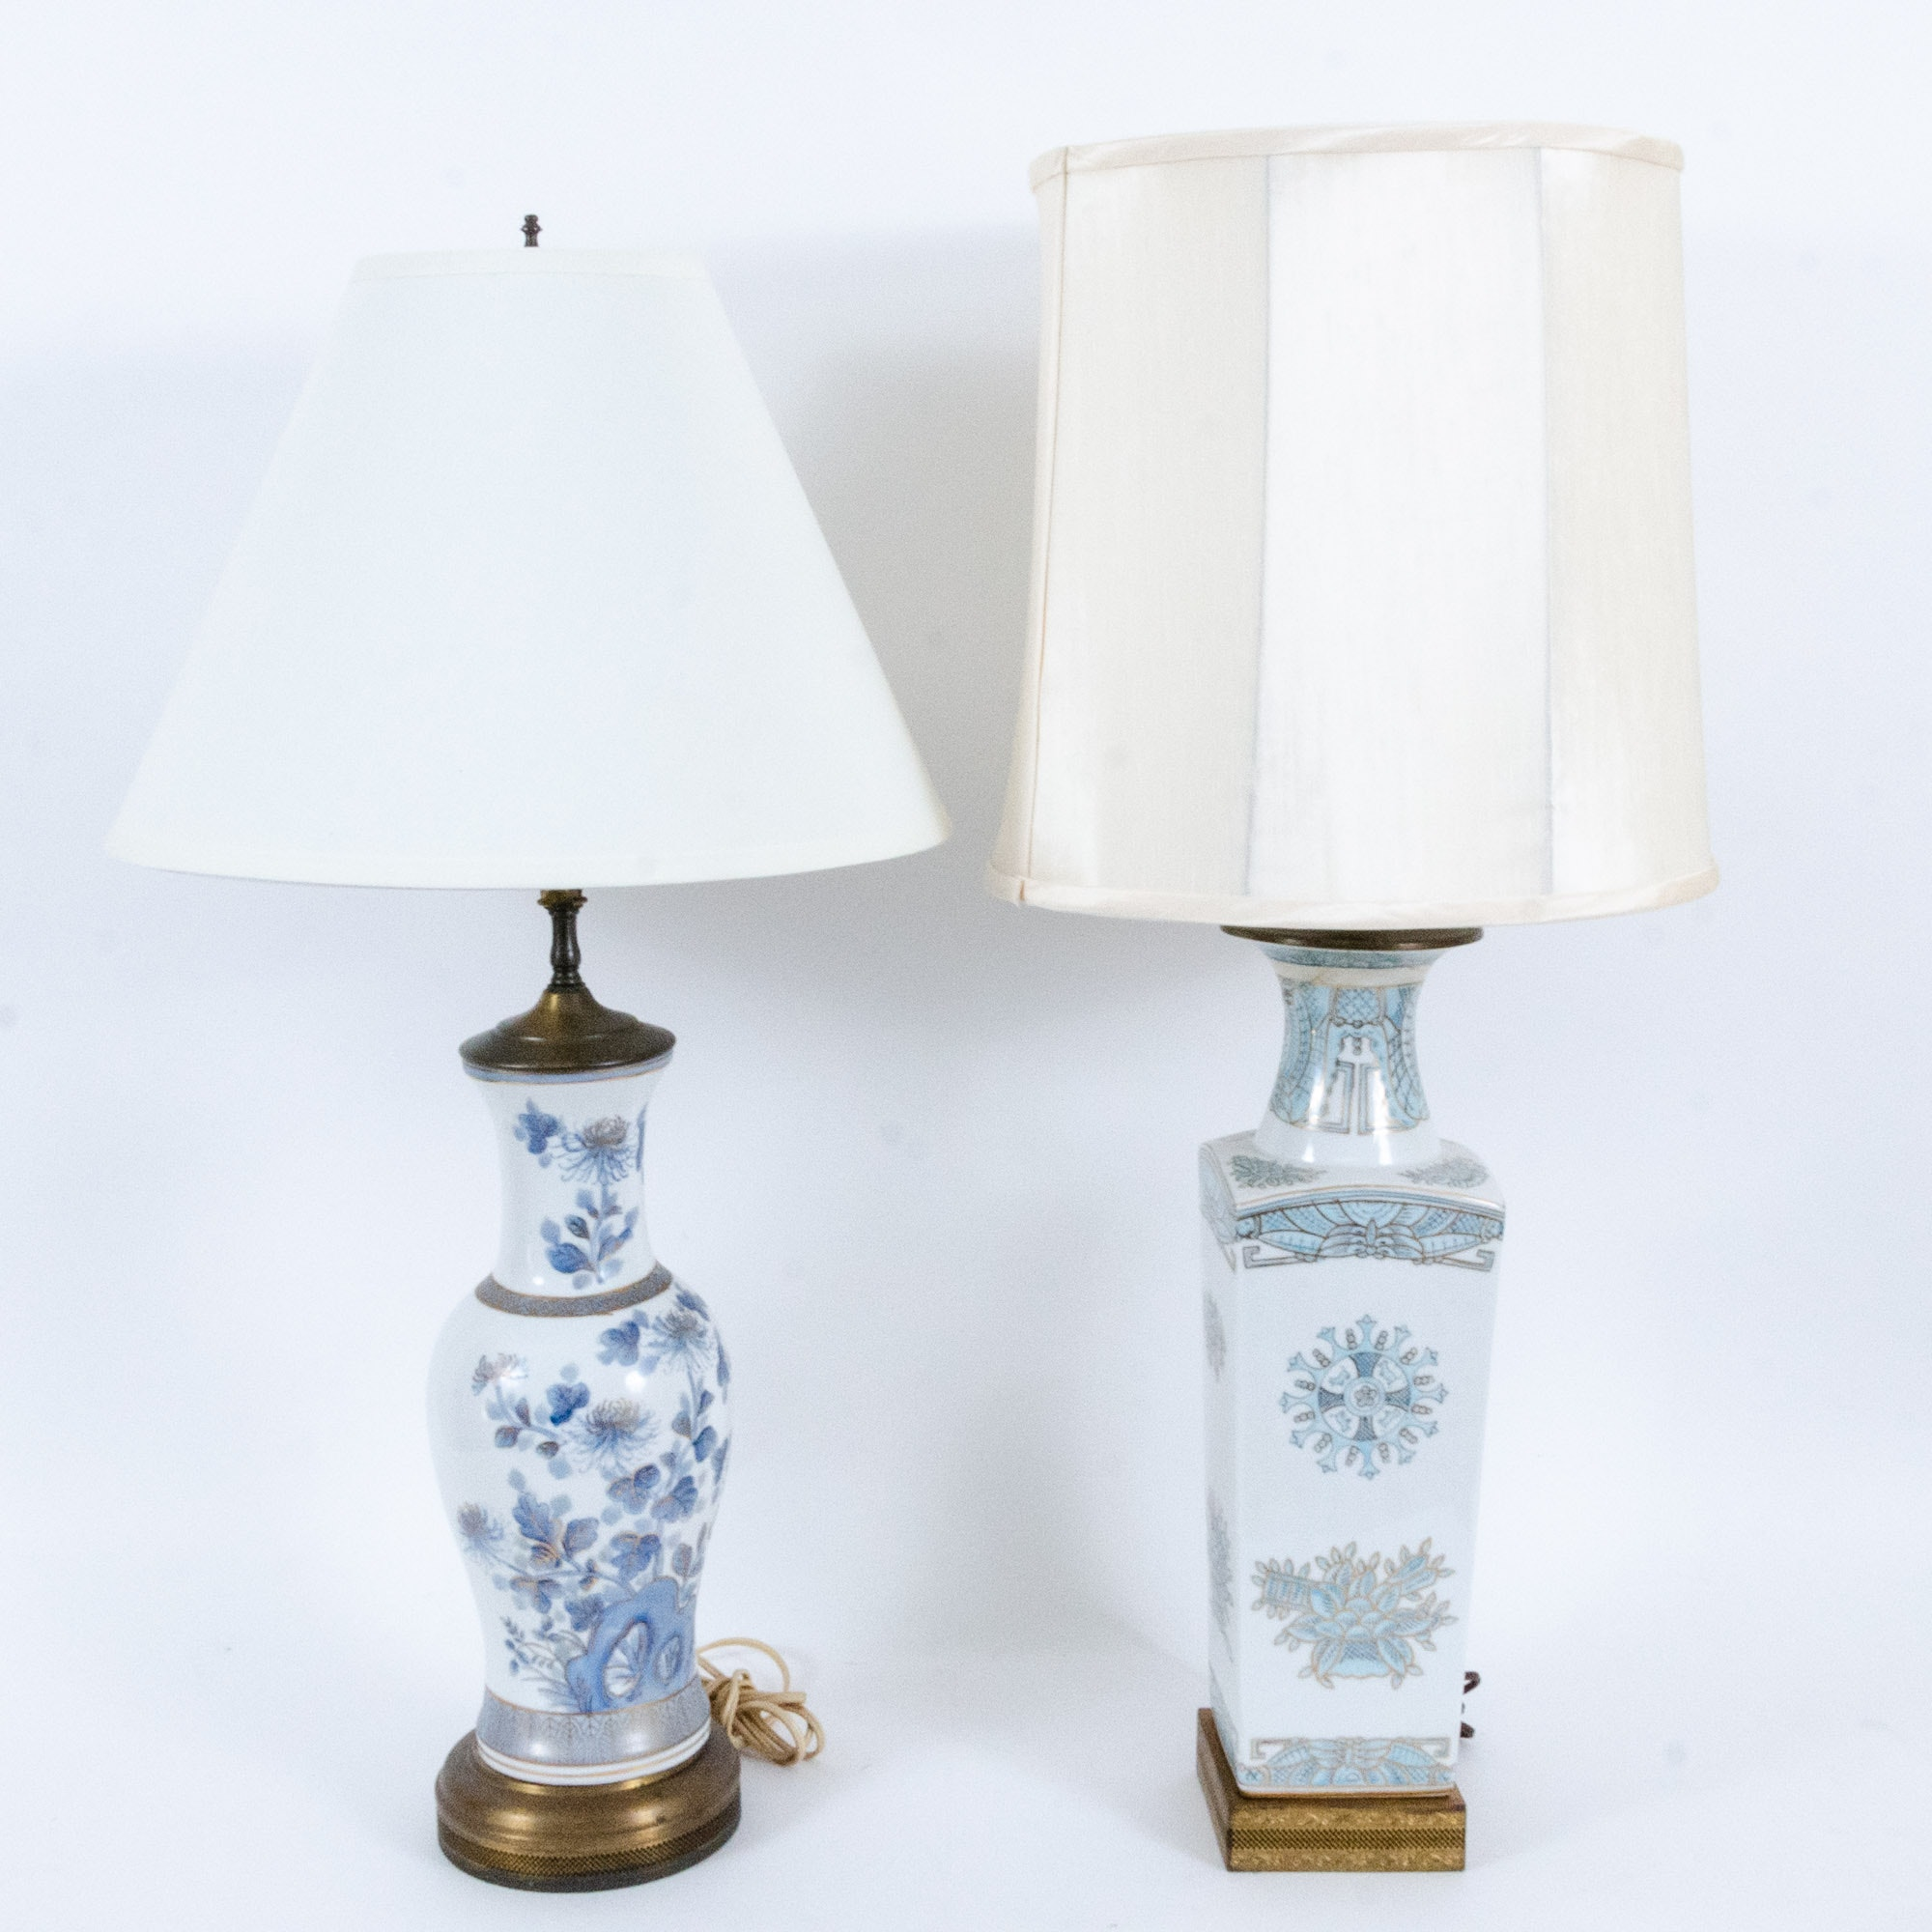 Hand Decorated Blue Floral Motif Table Lamps with Gilt Decoration